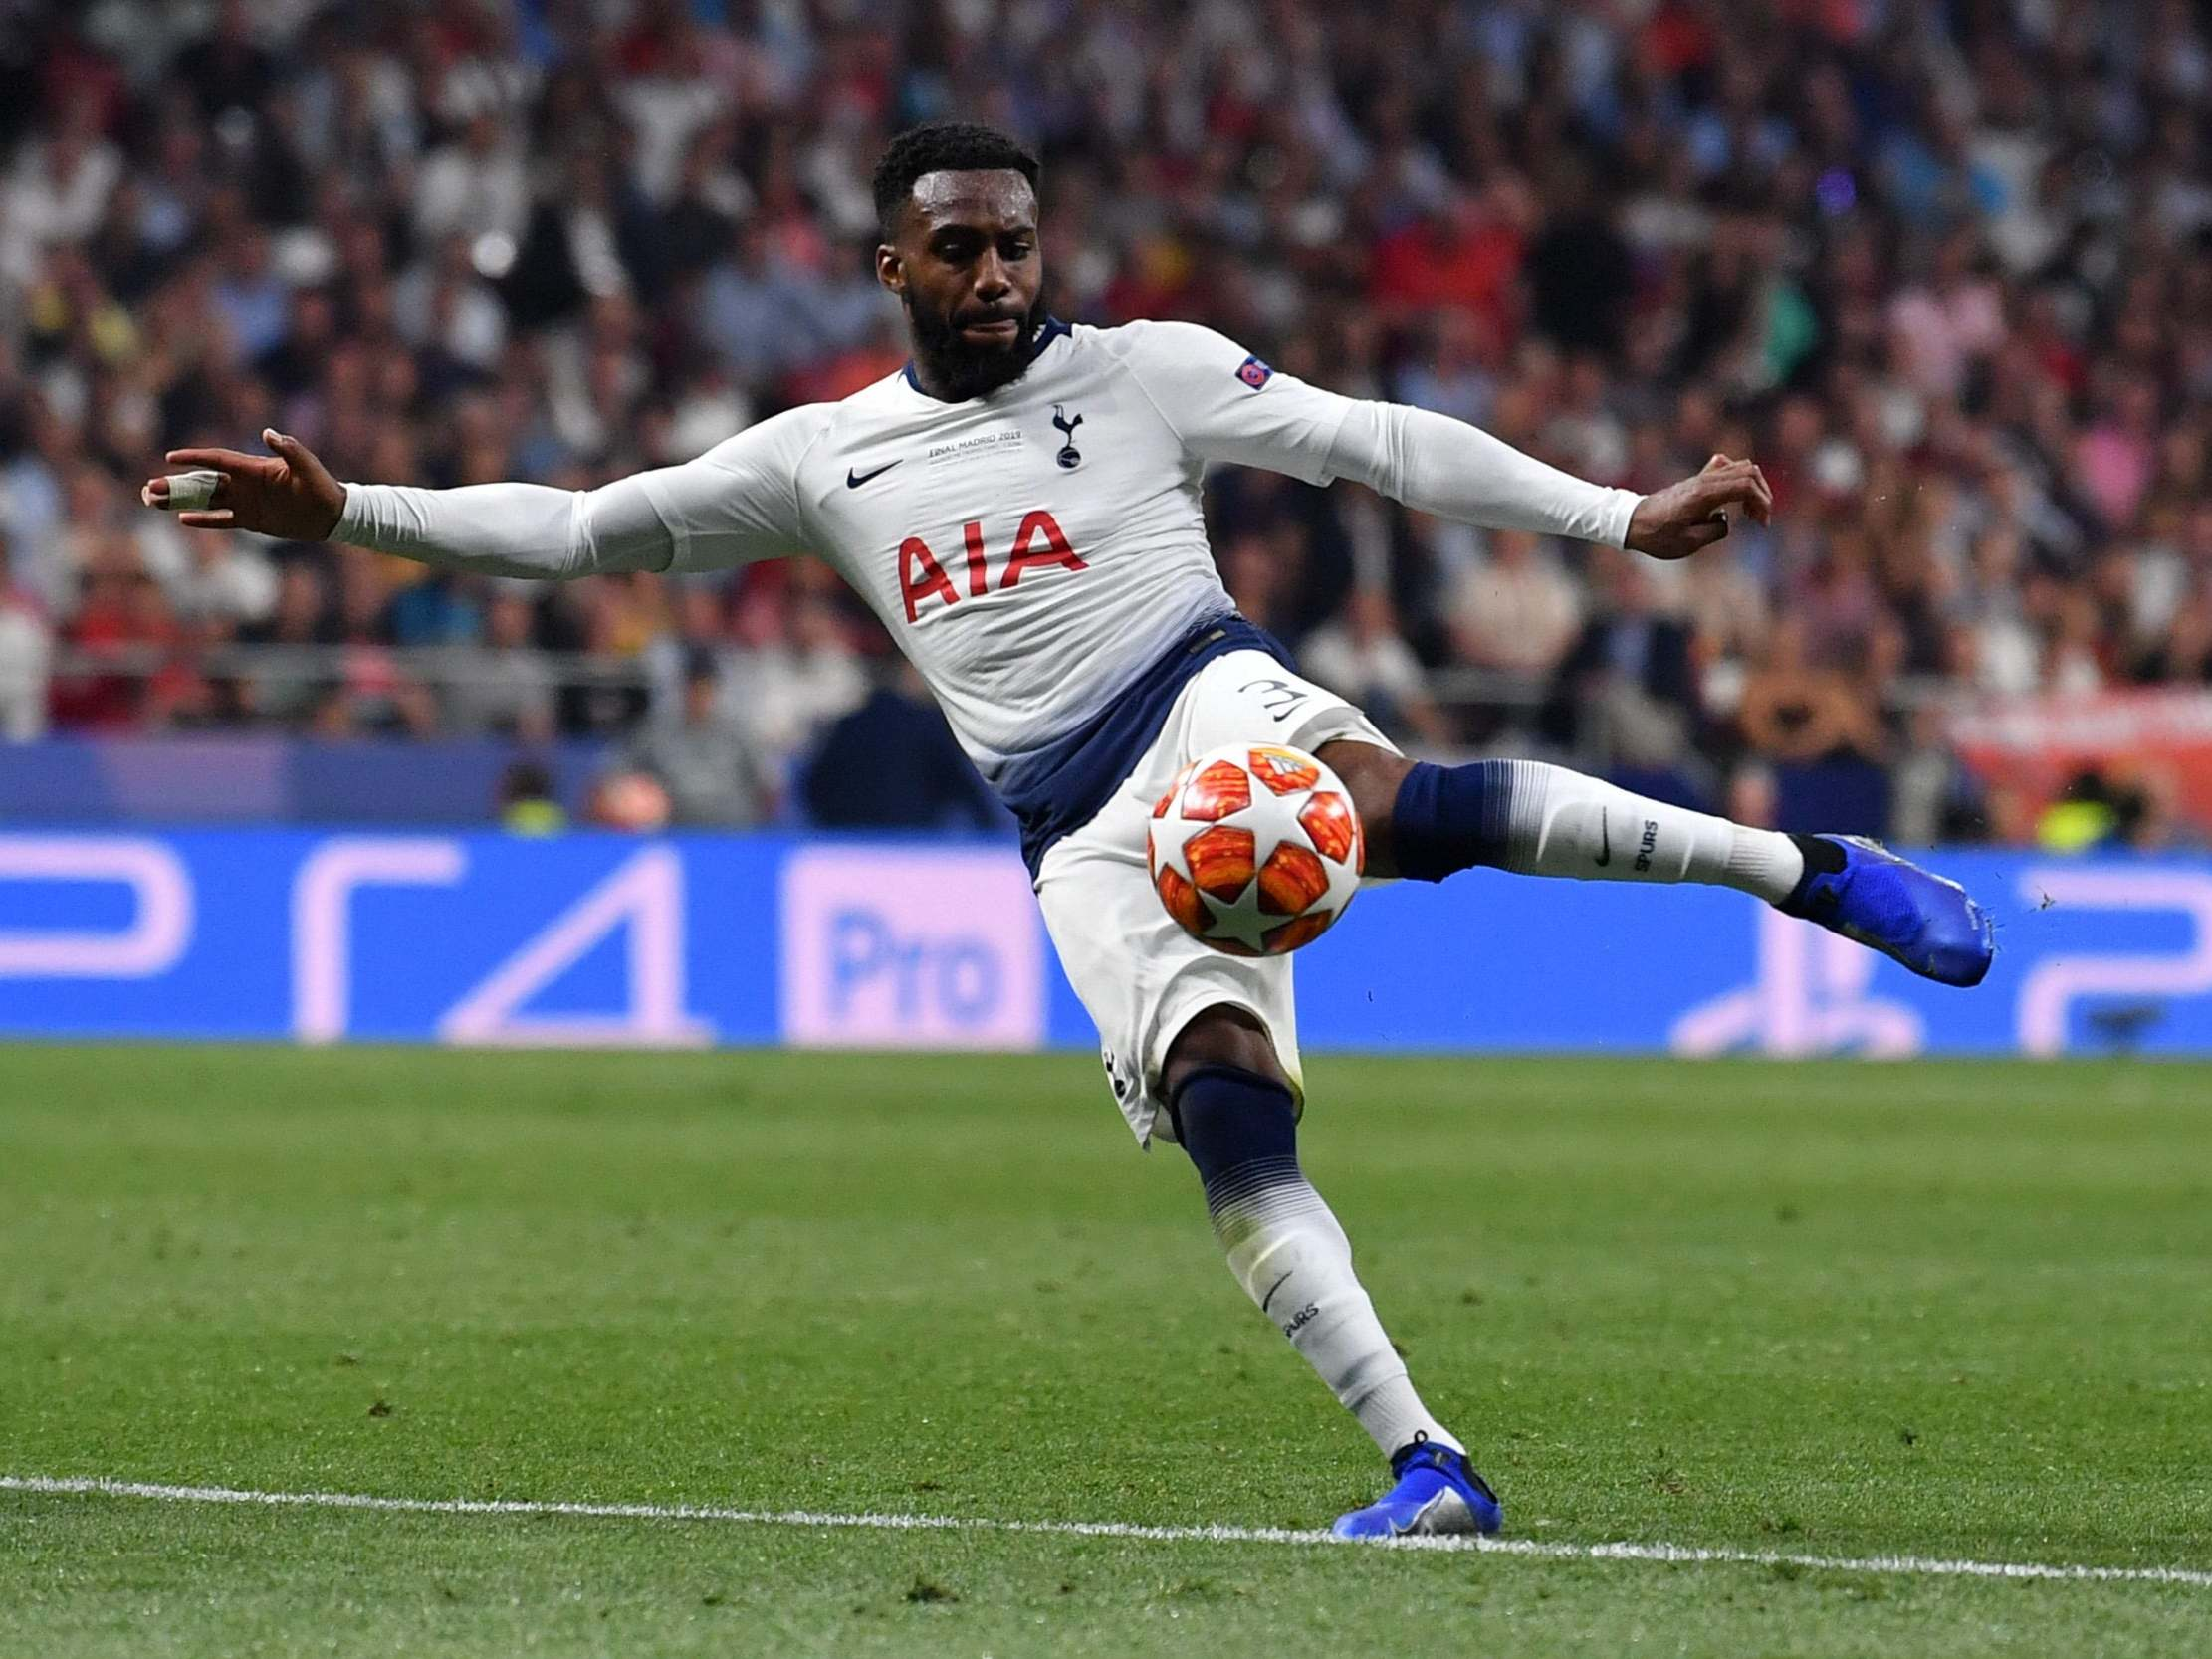 Tottenham transfer news: Danny Rose says it is 'no secret' he may leave Spurs this summer